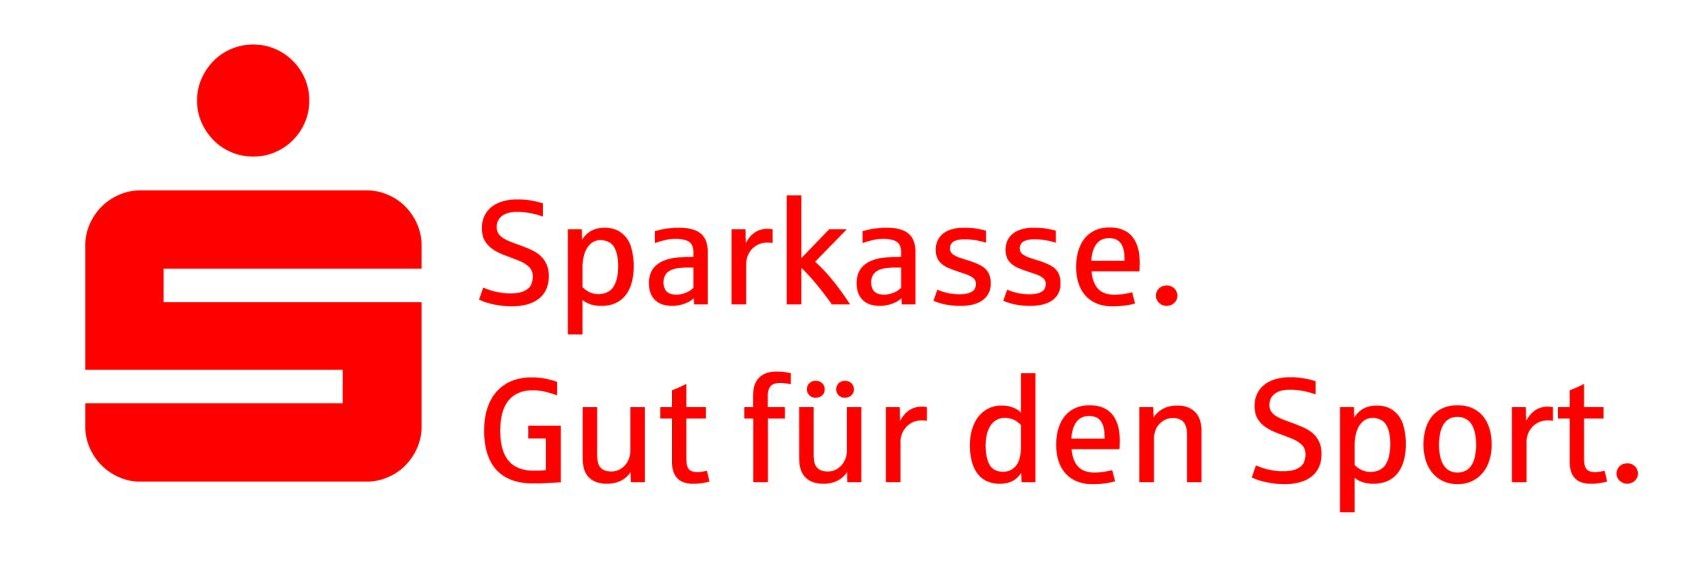 Sparkasse Altenburger Land